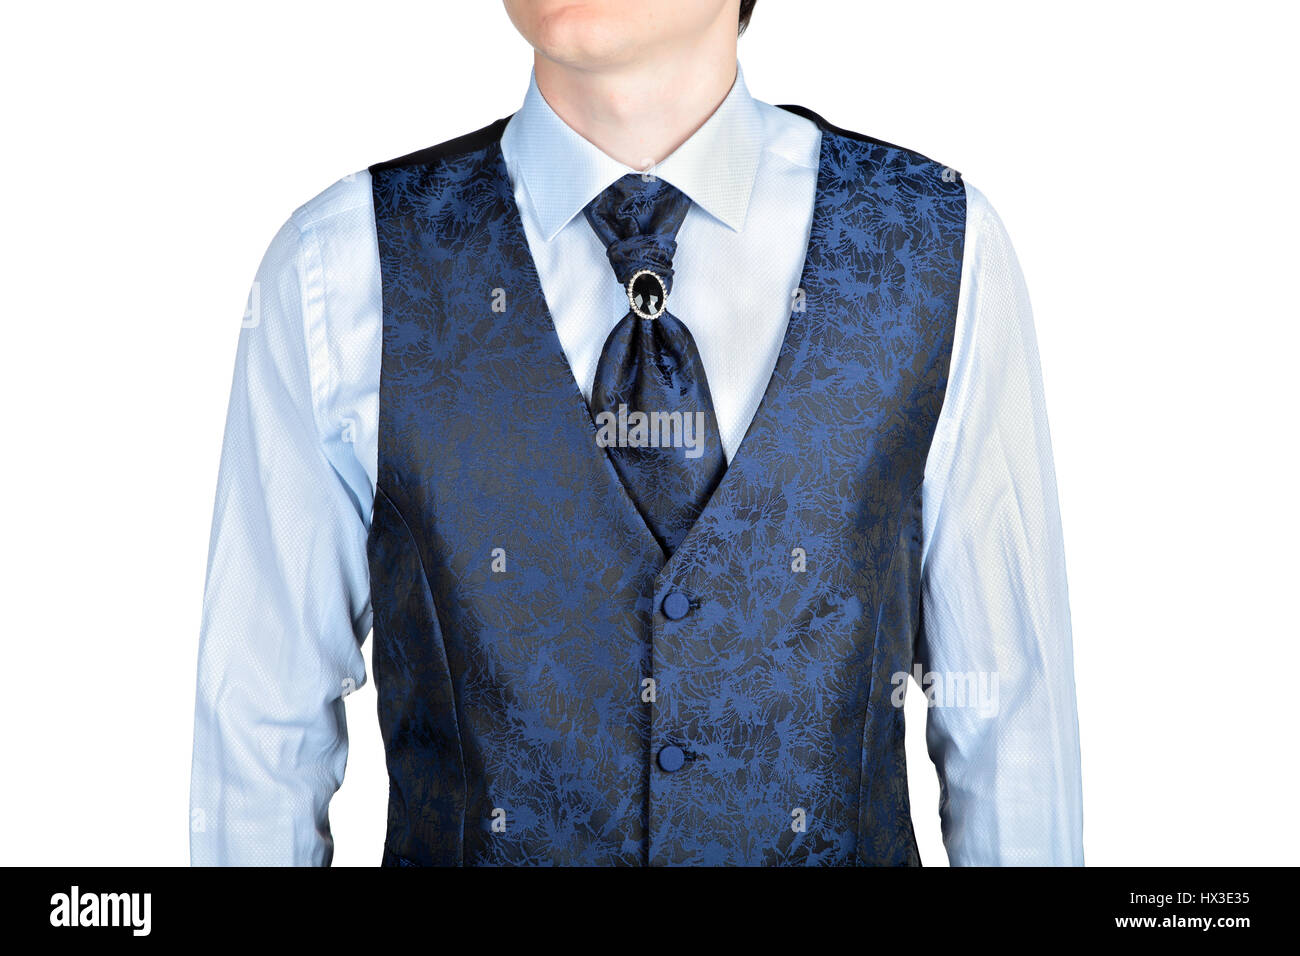 Mens Waistcoat Stock Photos & Mens Waistcoat Stock Images - Alamy